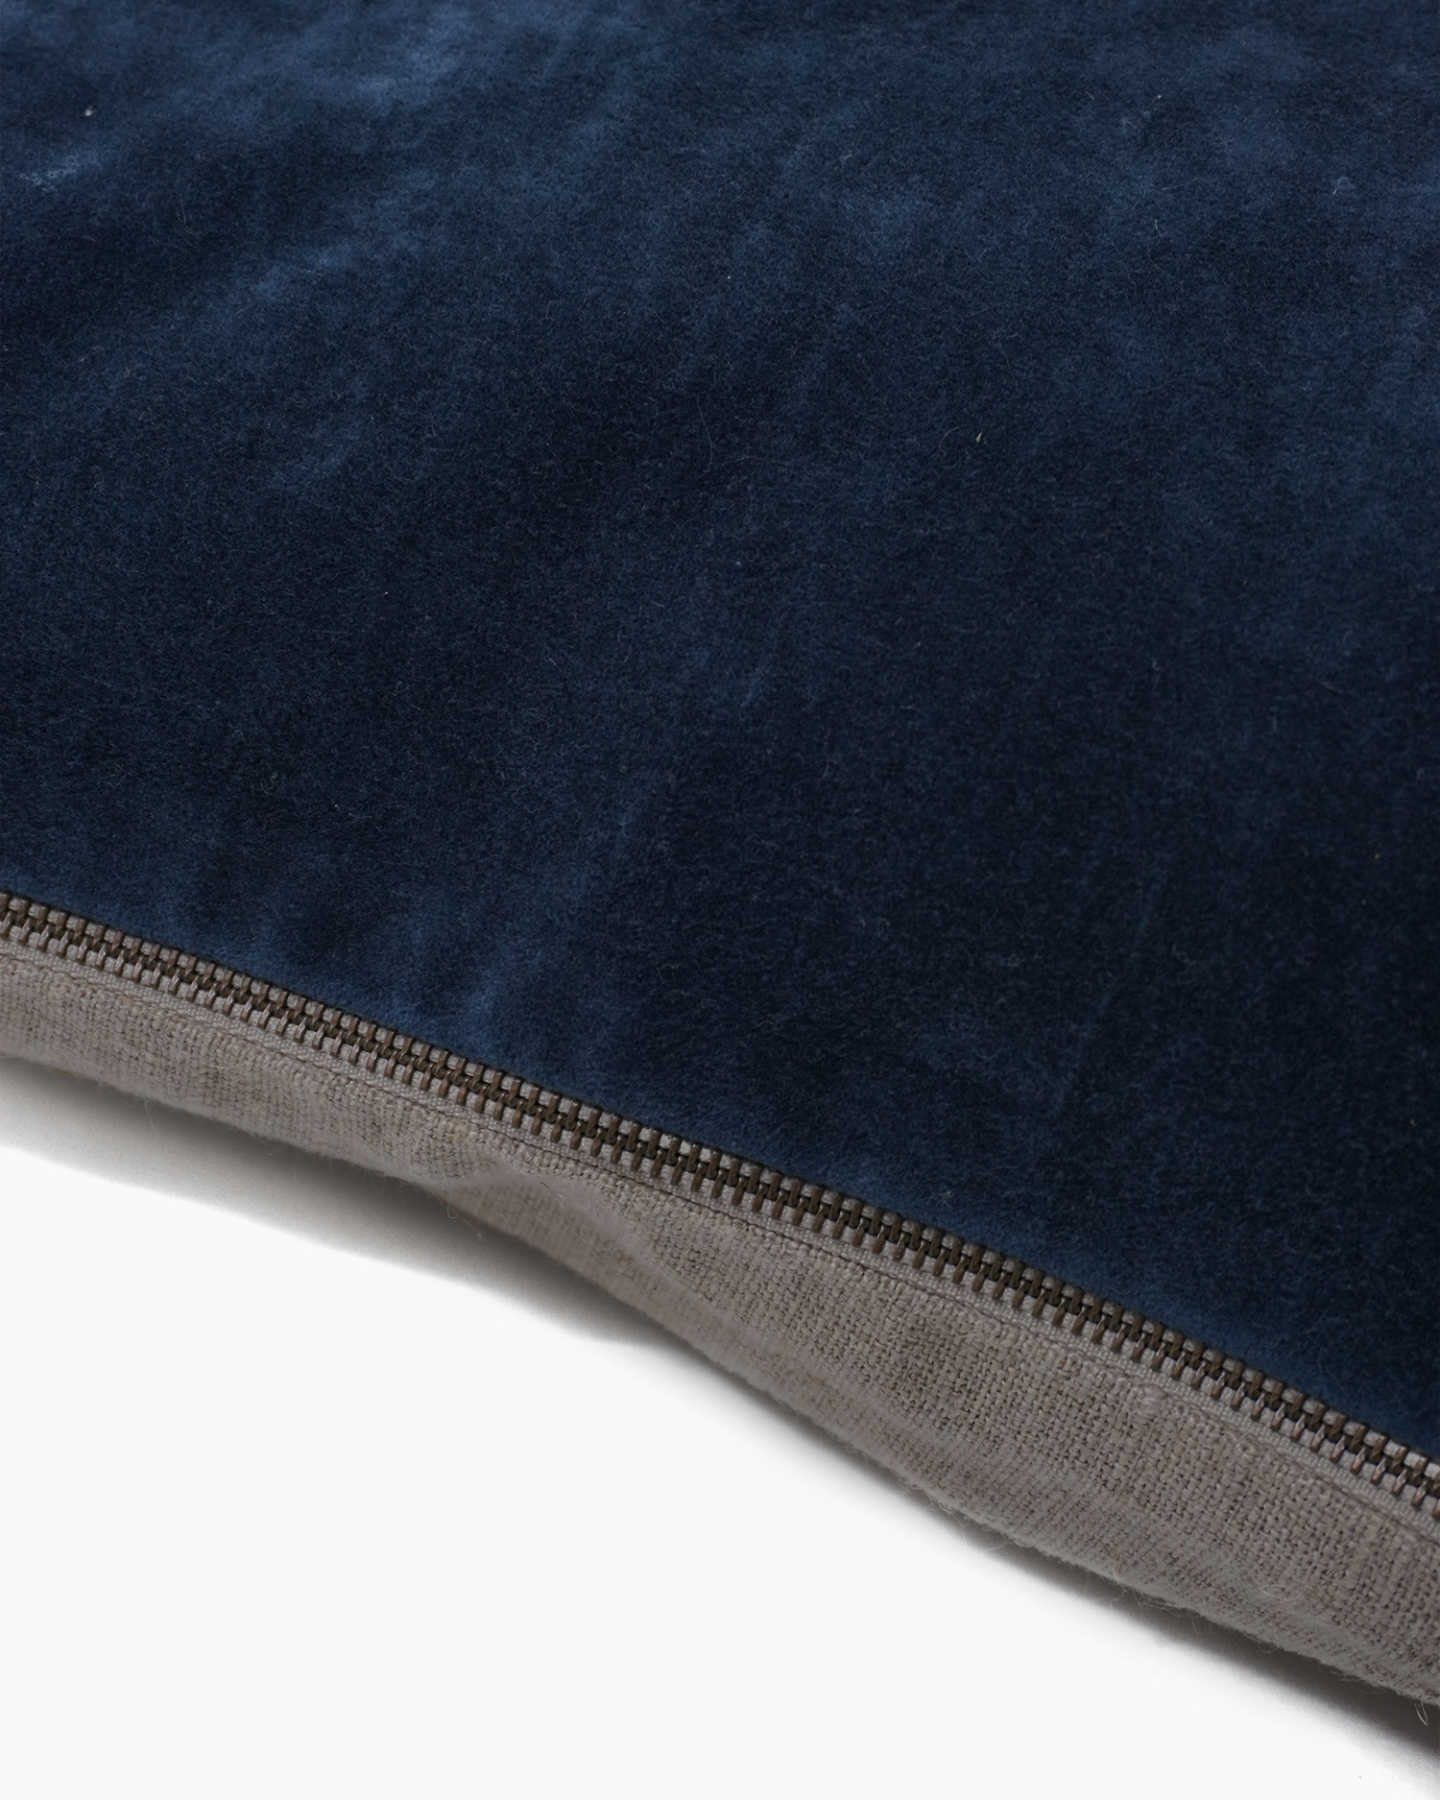 Plush Velvet Pillow Cover - Navy - 1